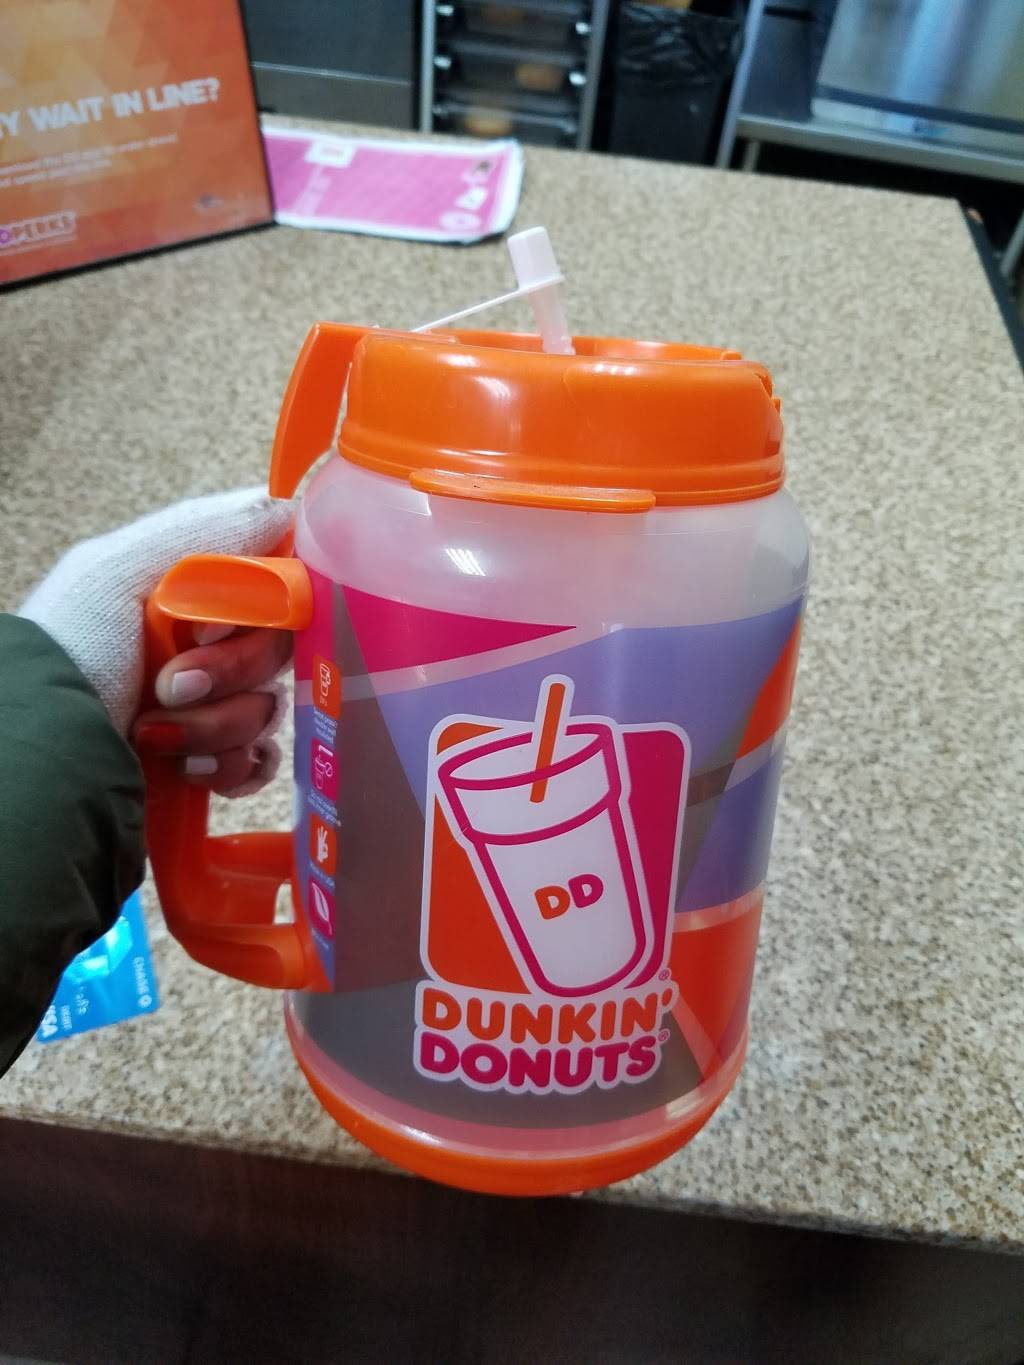 Dunkin Donuts | cafe | 3201 W Cermak Rd, Chicago, IL 60623, USA | 7732770906 OR +1 773-277-0906